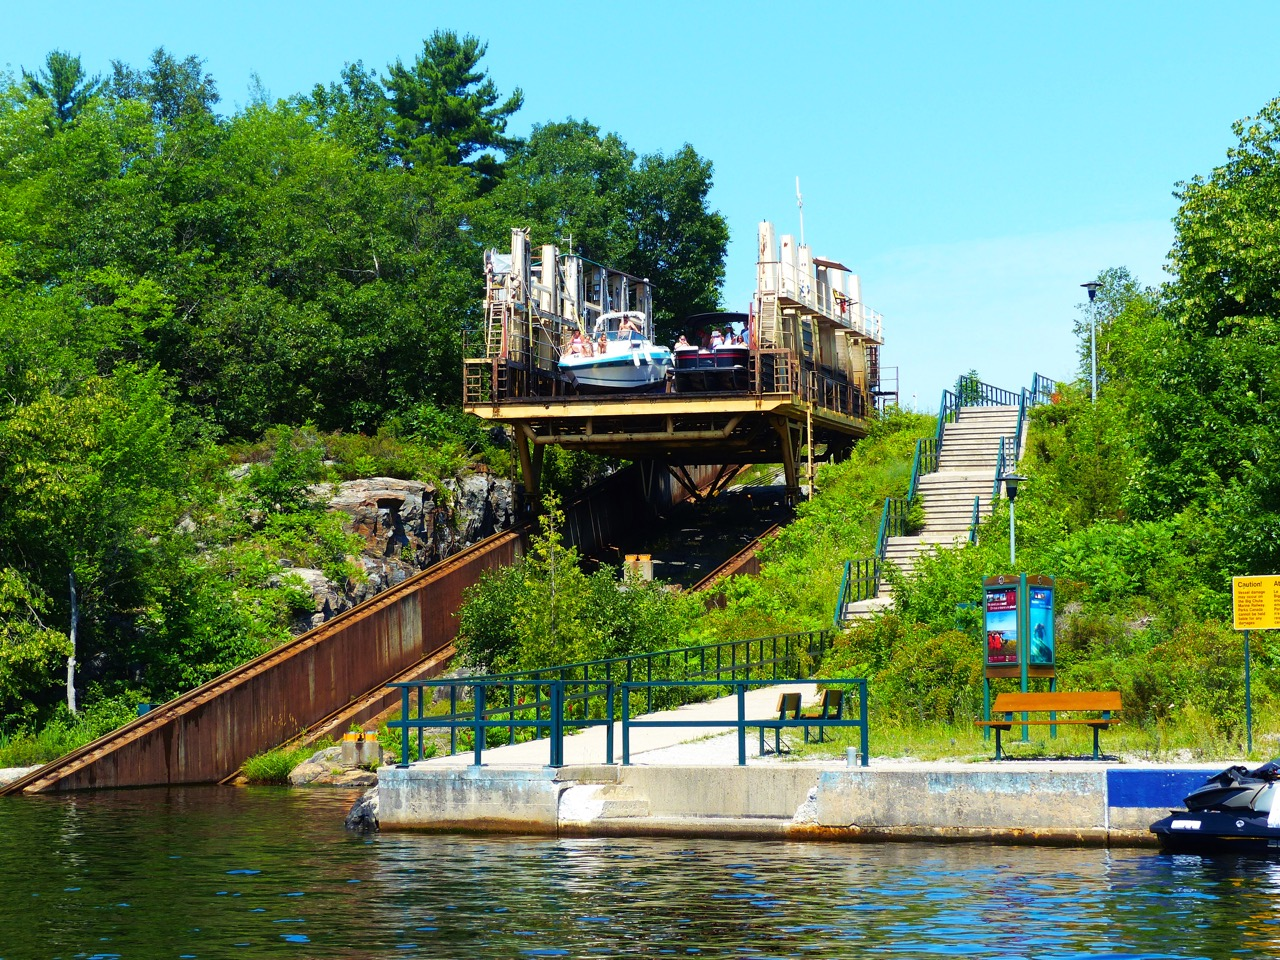 Engineering marvel on best trent severn waterway PWC day rides